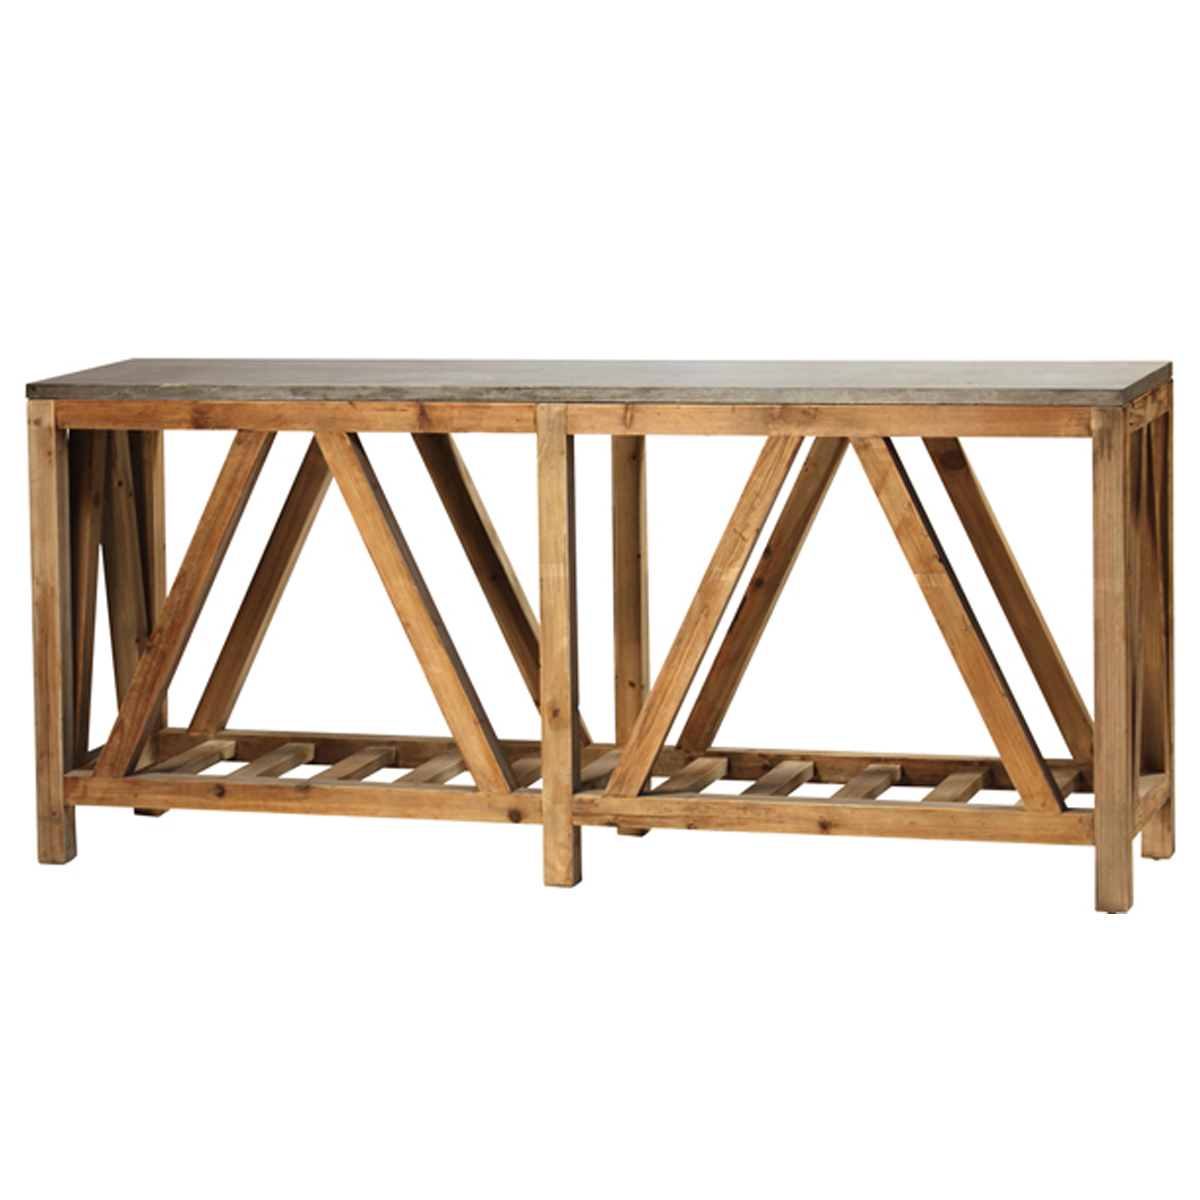 19Thc Belgian Bluestone Console Table At 1Stdibs Buy Console Table Regarding Bluestone Console Tables (View 1 of 20)